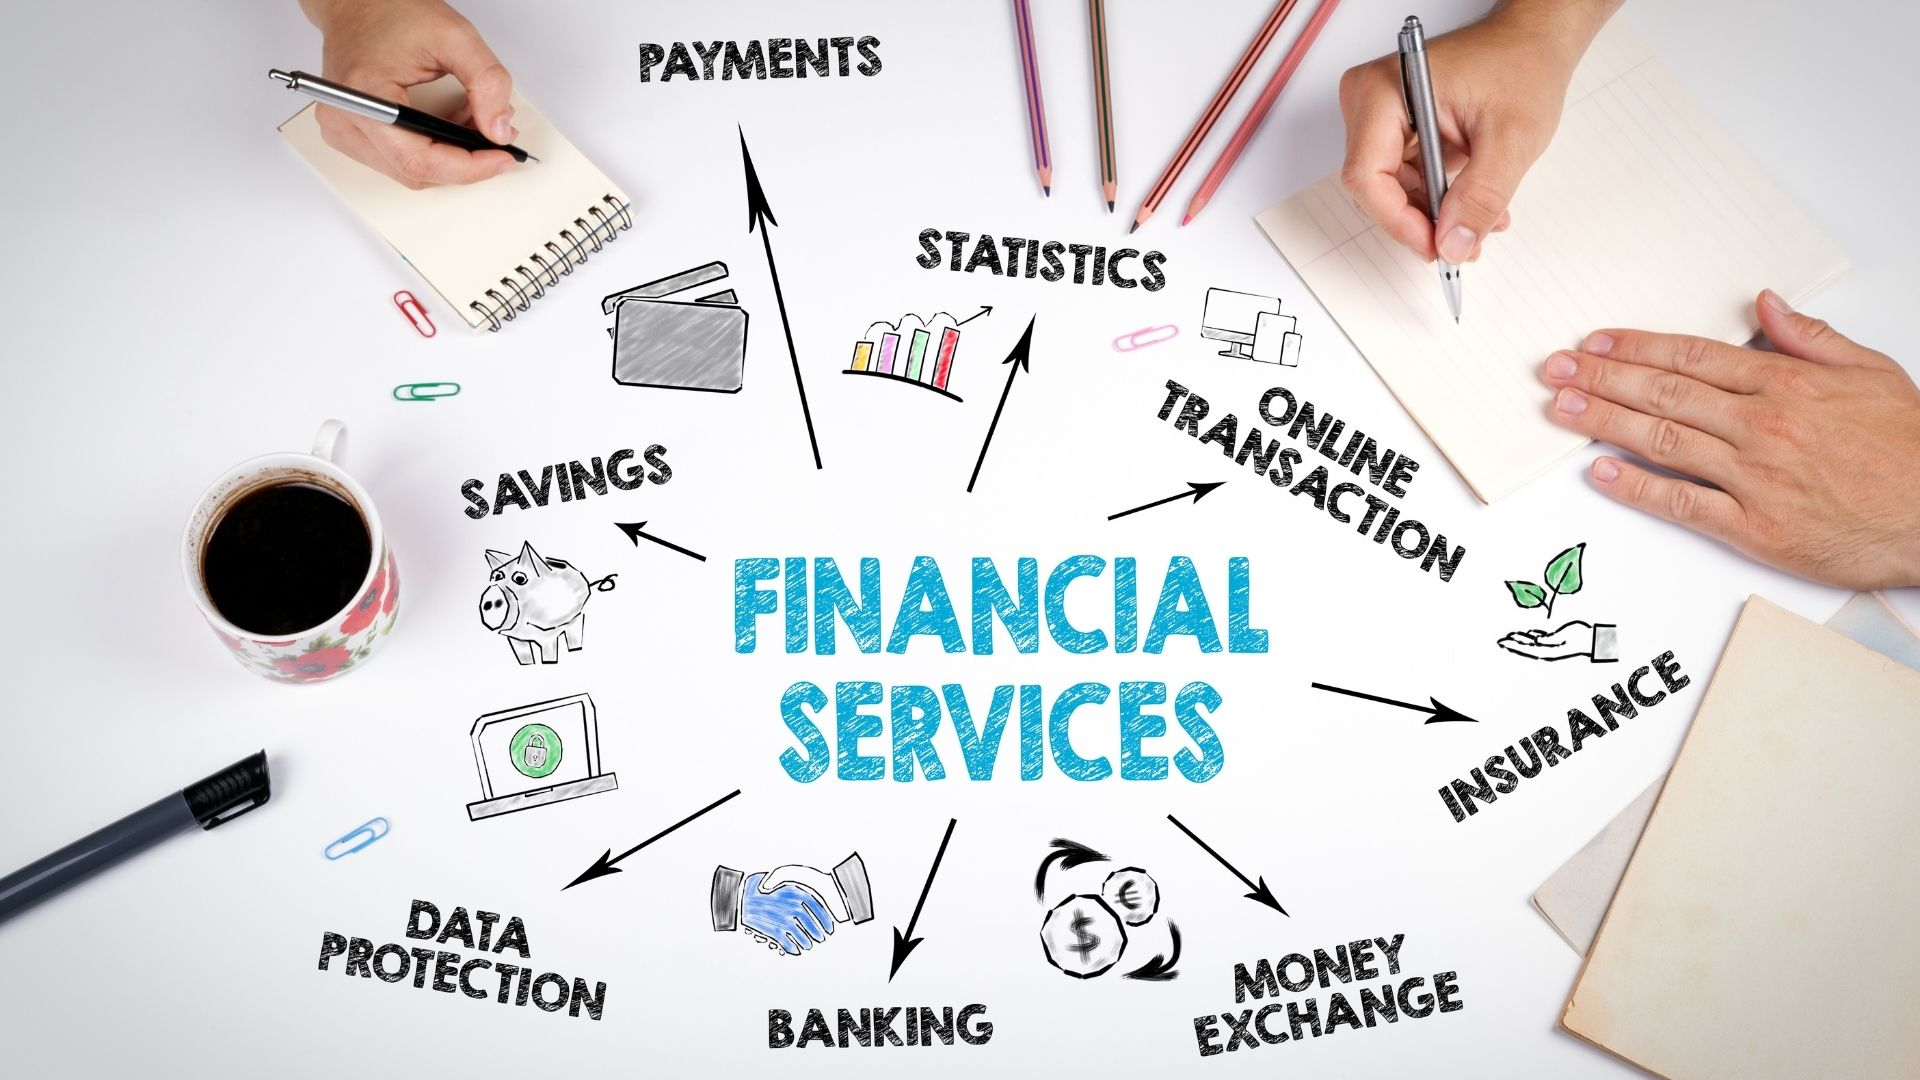 88% of financial services firms in the UK are under pressure to make decisions faster 41